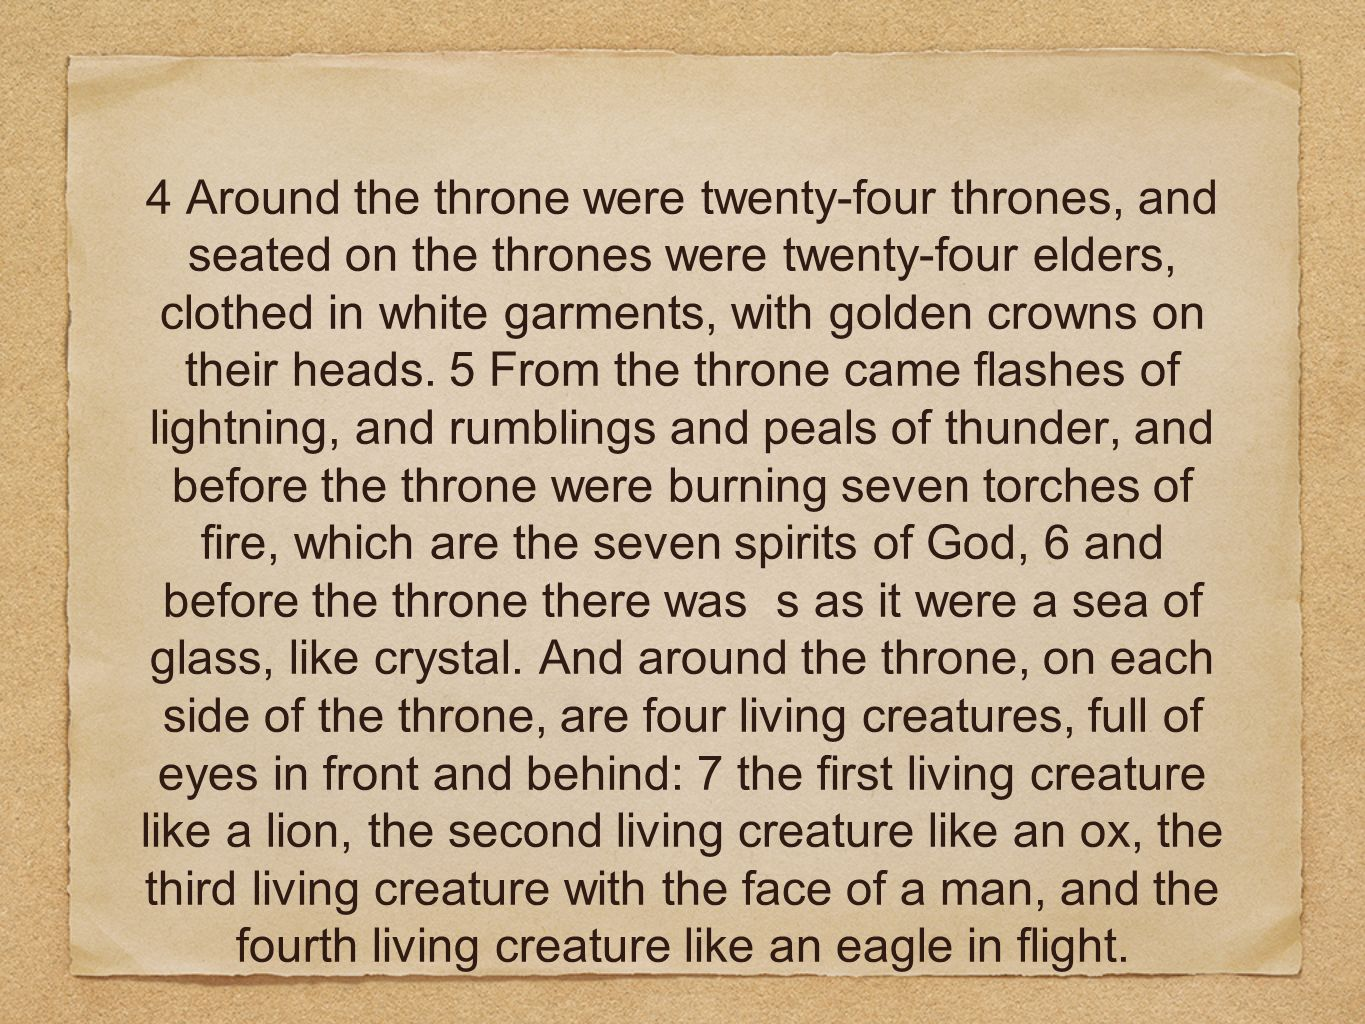 4 Around the throne were twenty-four thrones, and seated on the thrones were twenty-four elders, clothed in white garments, with golden crowns on thei